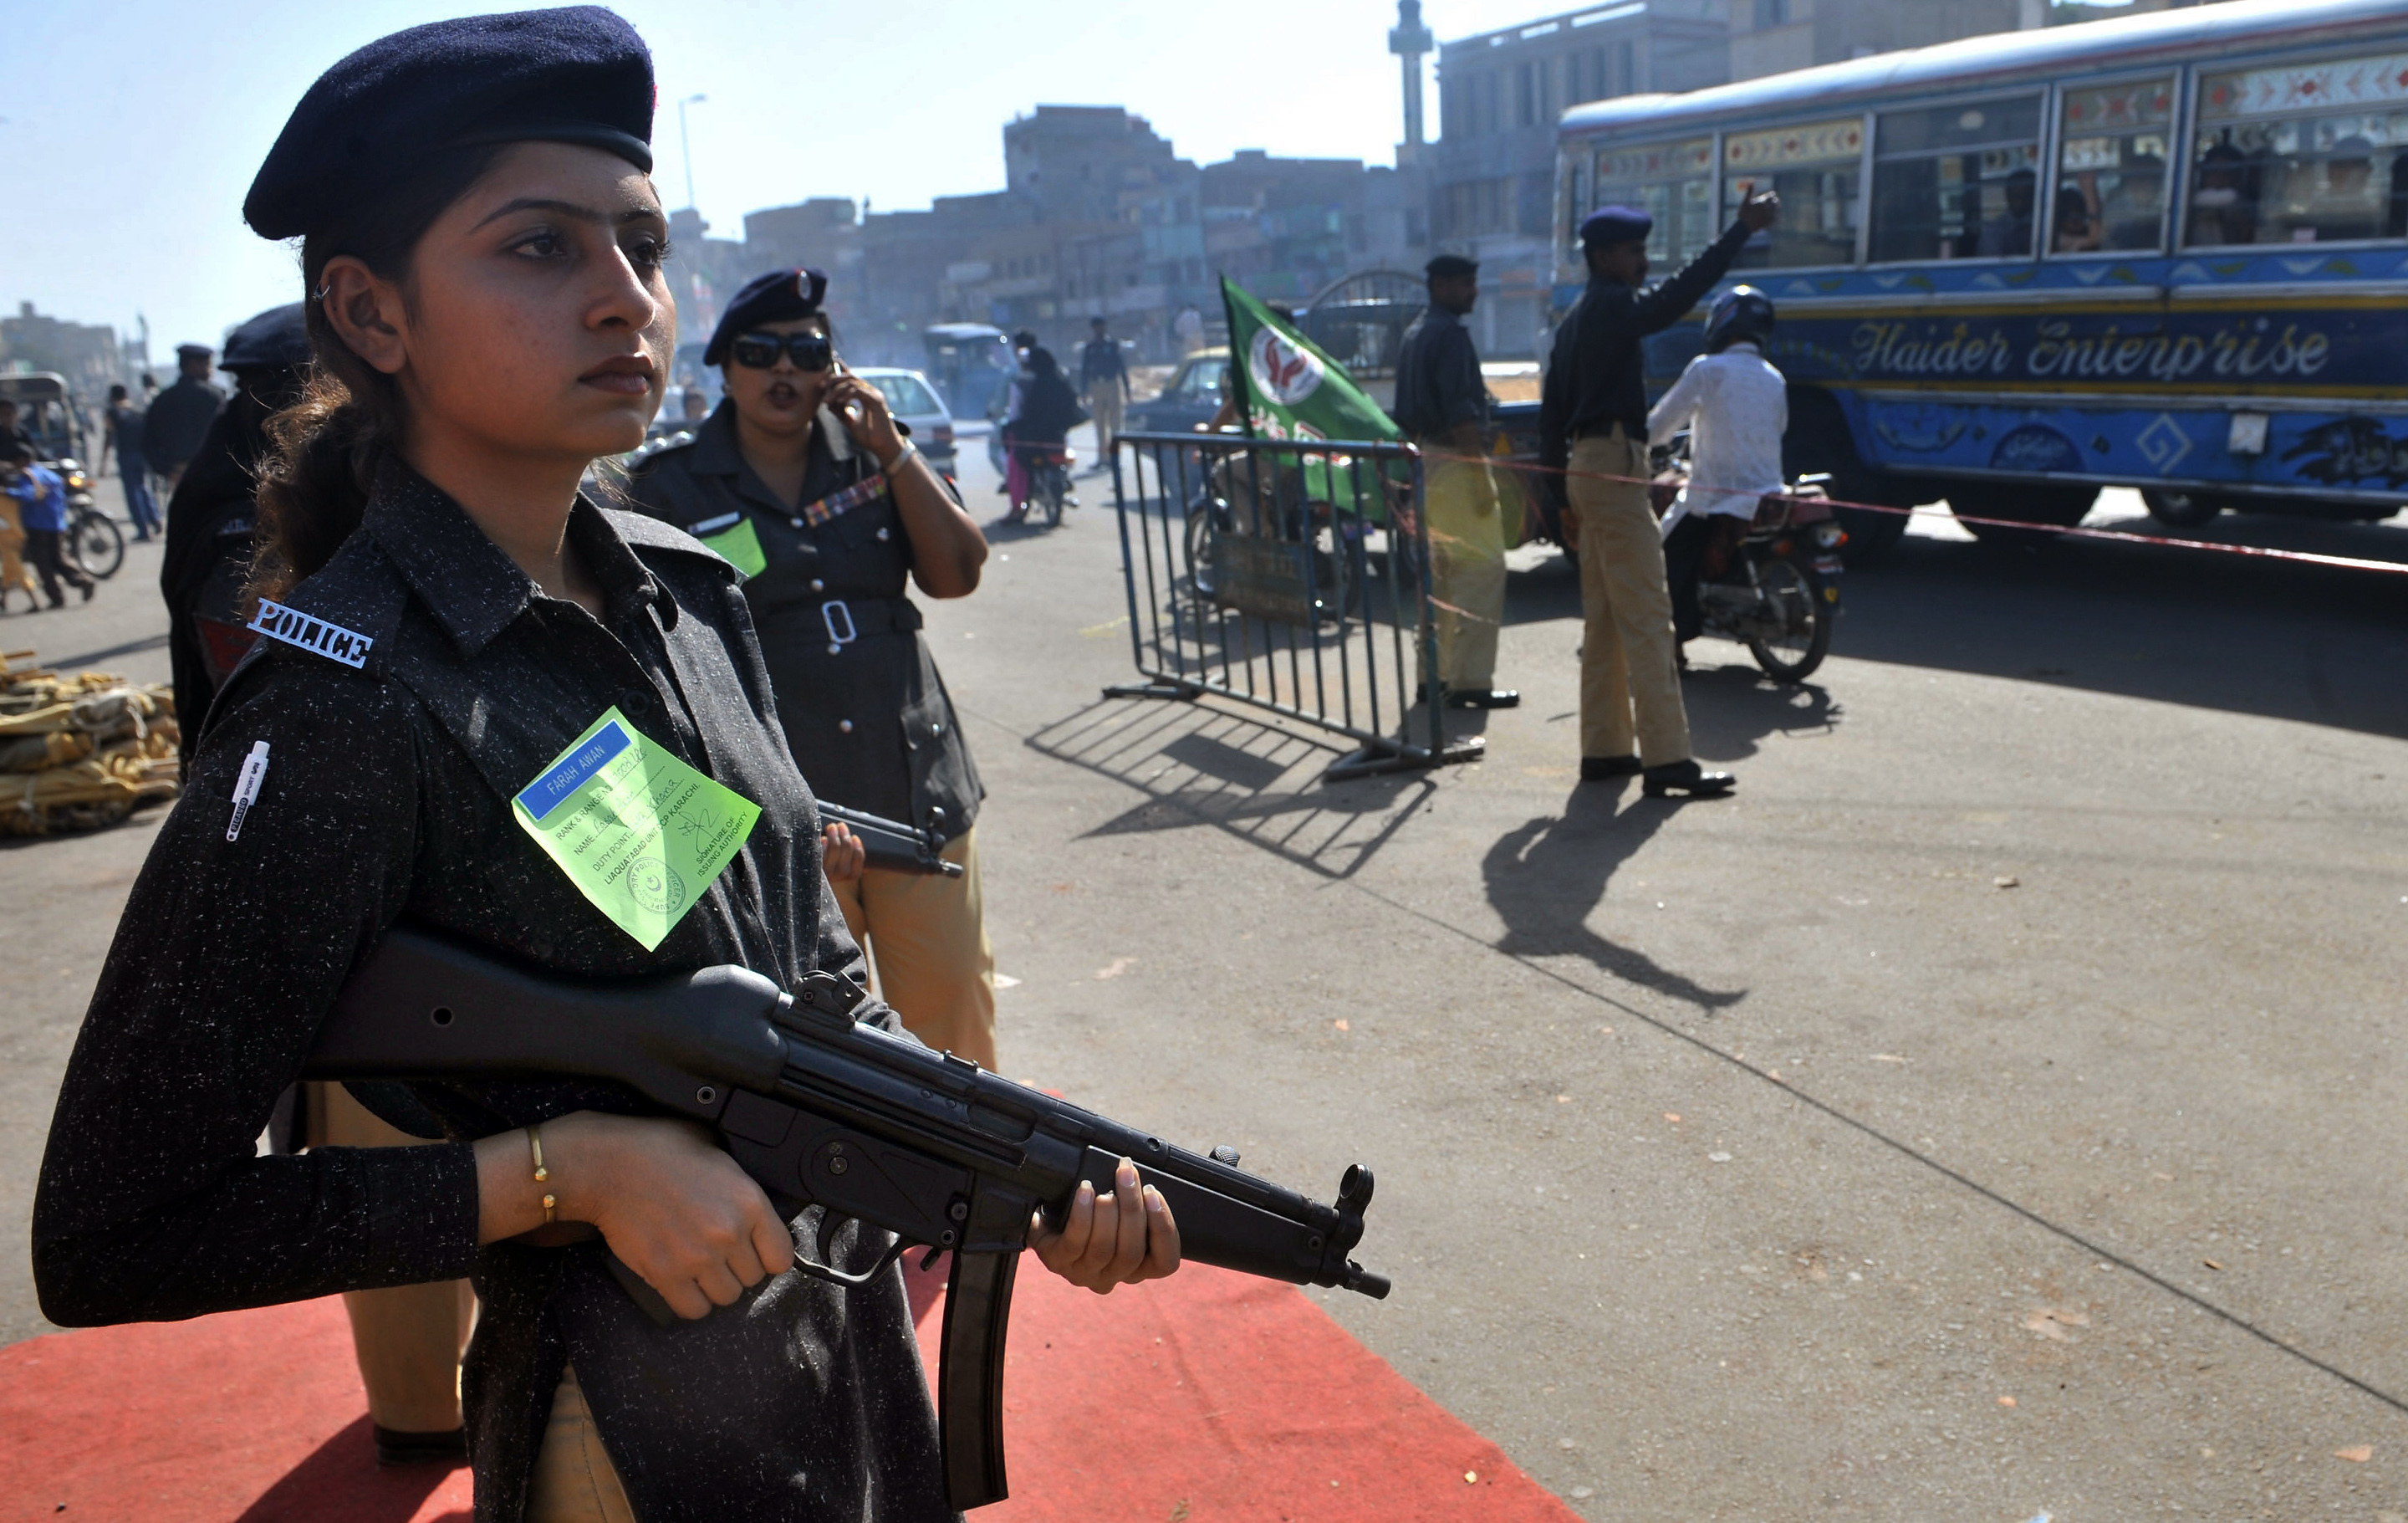 Pakistan: Police kill 5 suspected Baluch Liberation Army (BLA) separatists in southwest